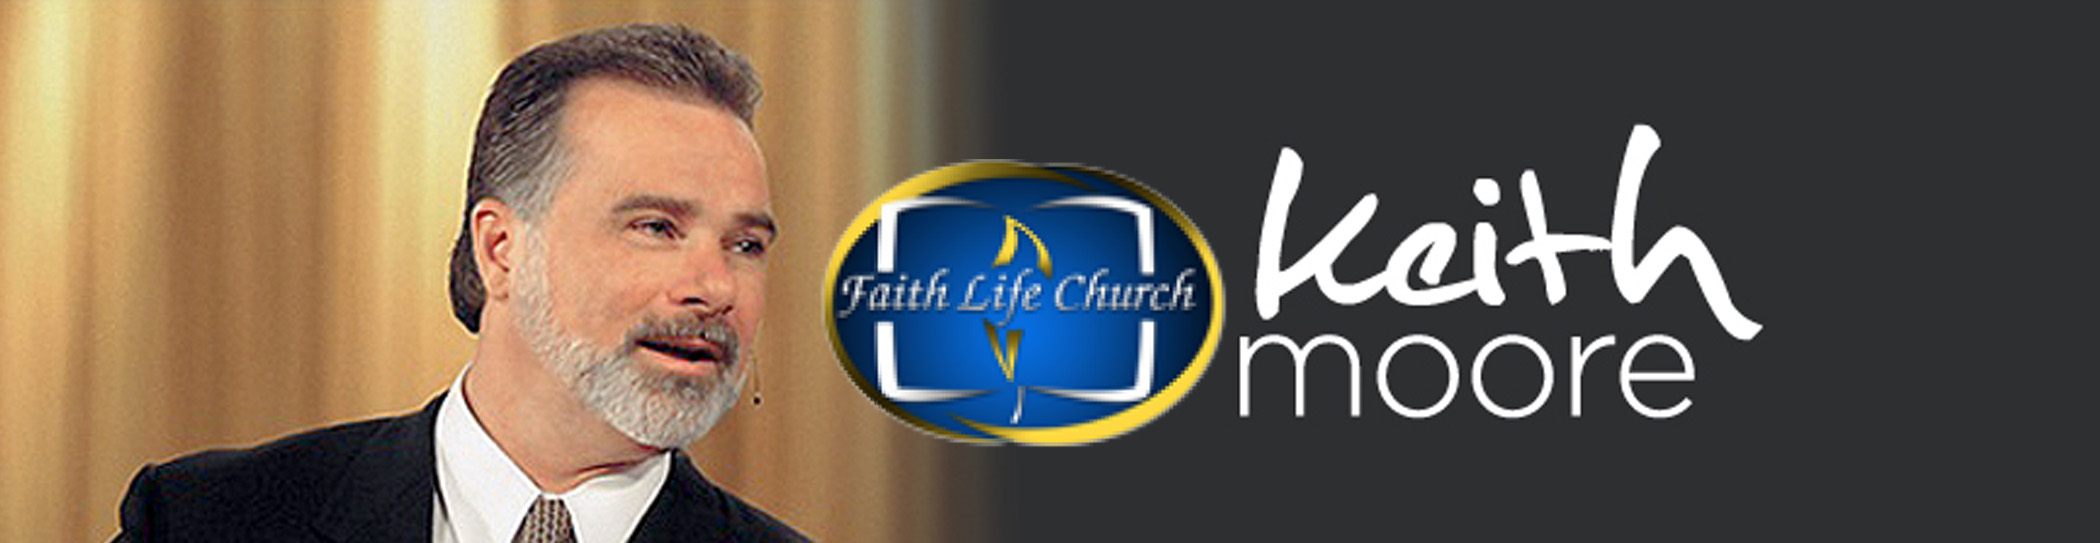 Faith Life Church